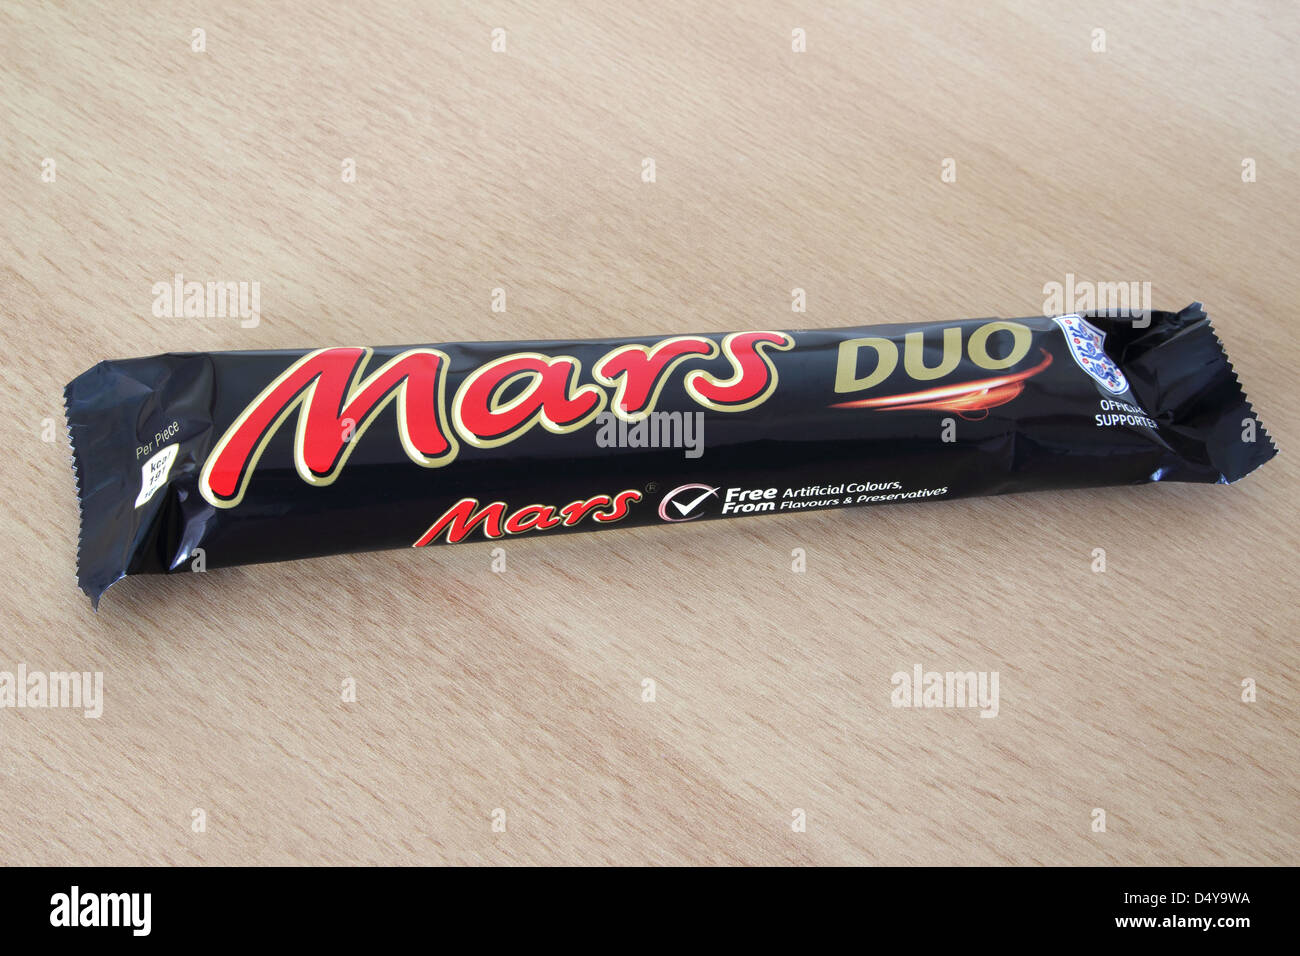 Mars Duo Chocolate Bar on a Wooden Background - Stock Image